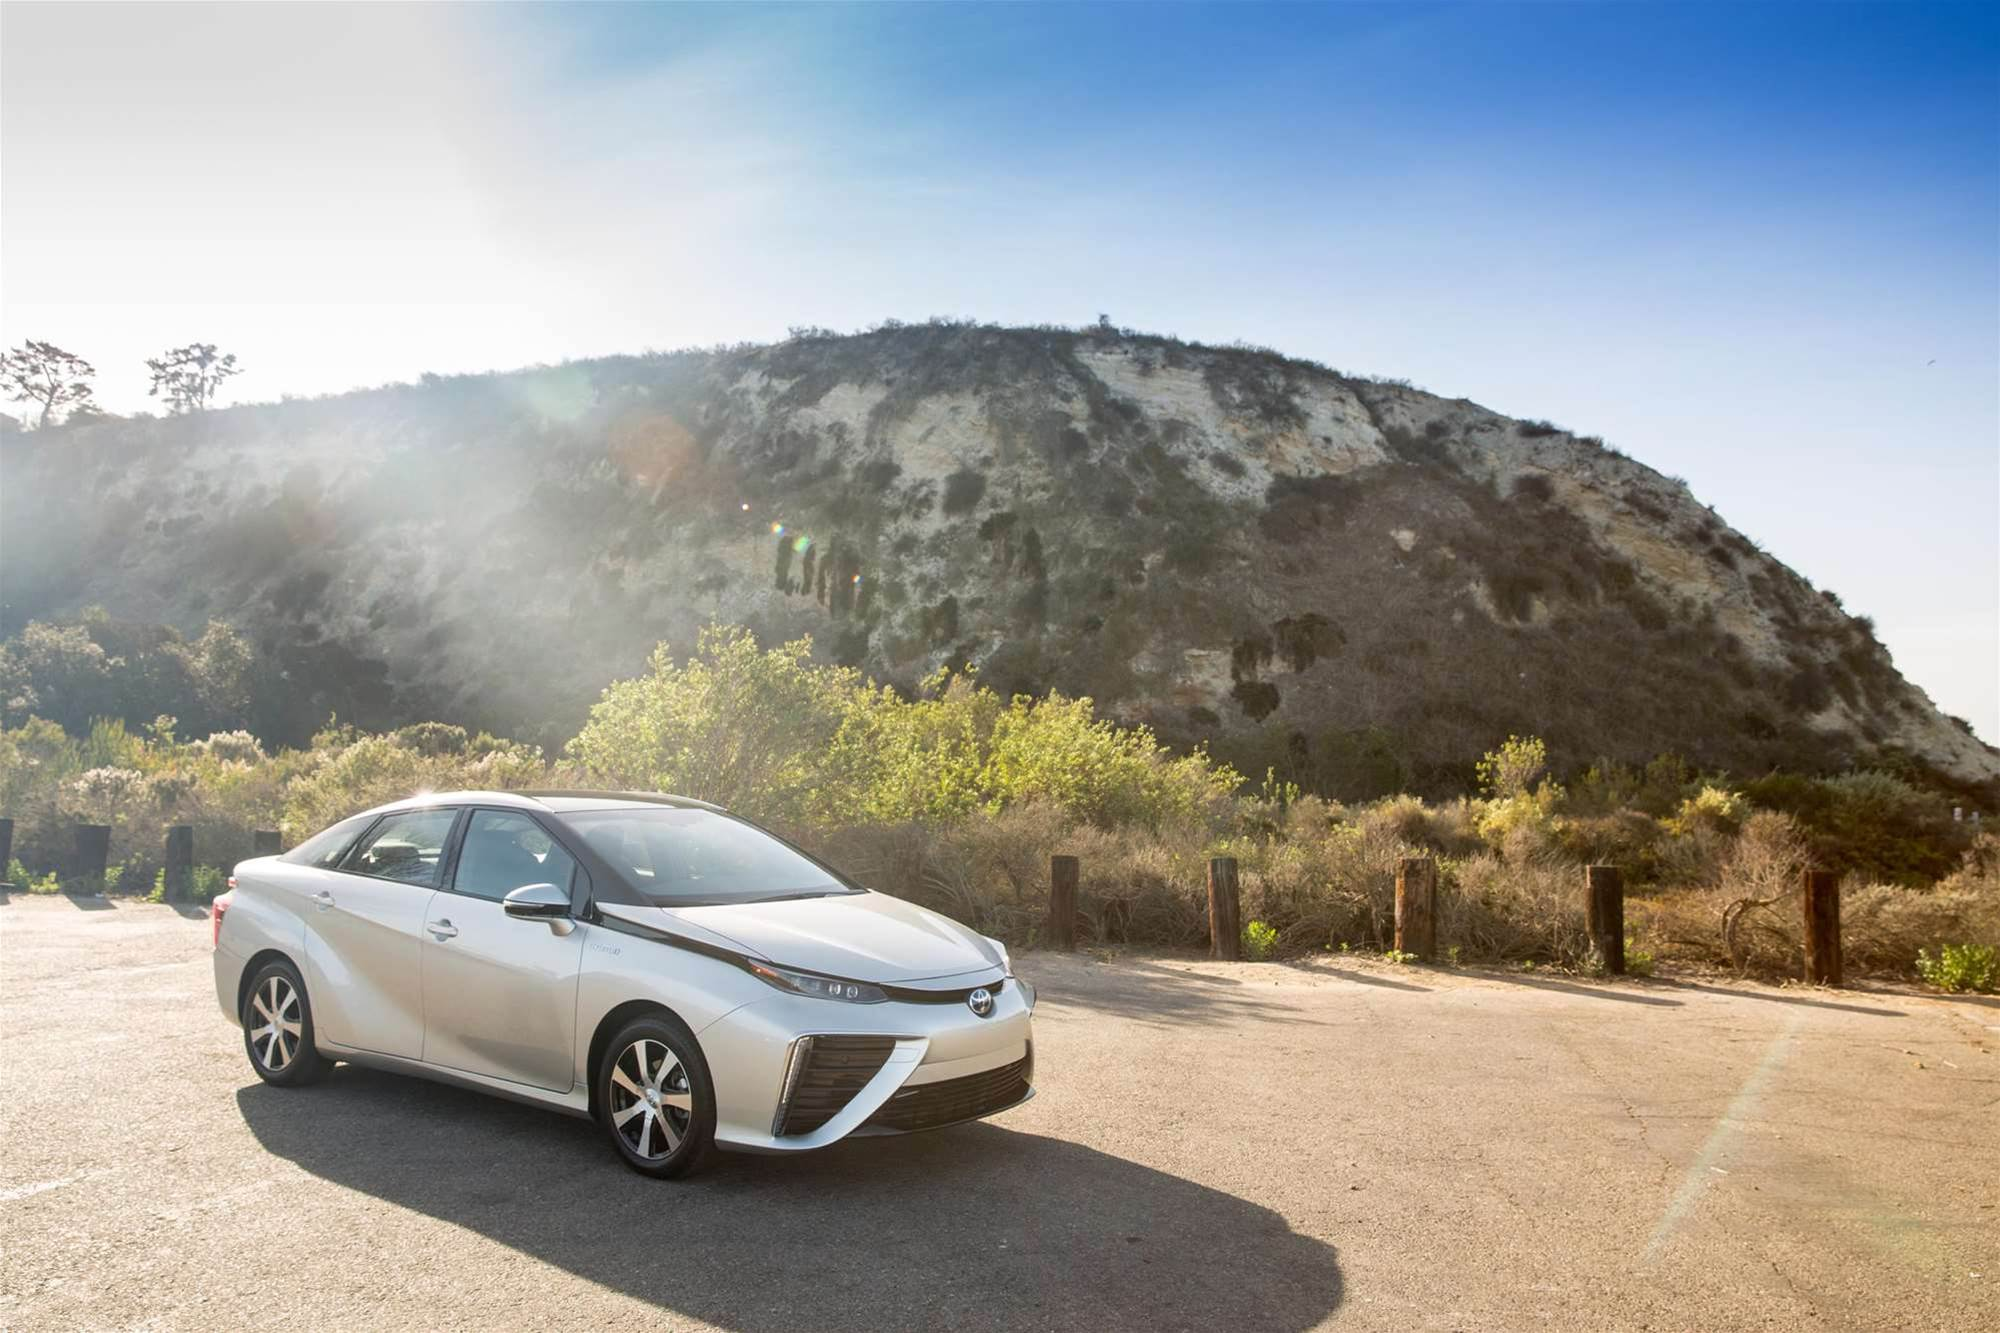 Test Drive: The 2016 Toyota Mirai Is Remarkably Unremarkable (And That's A Good Thing)